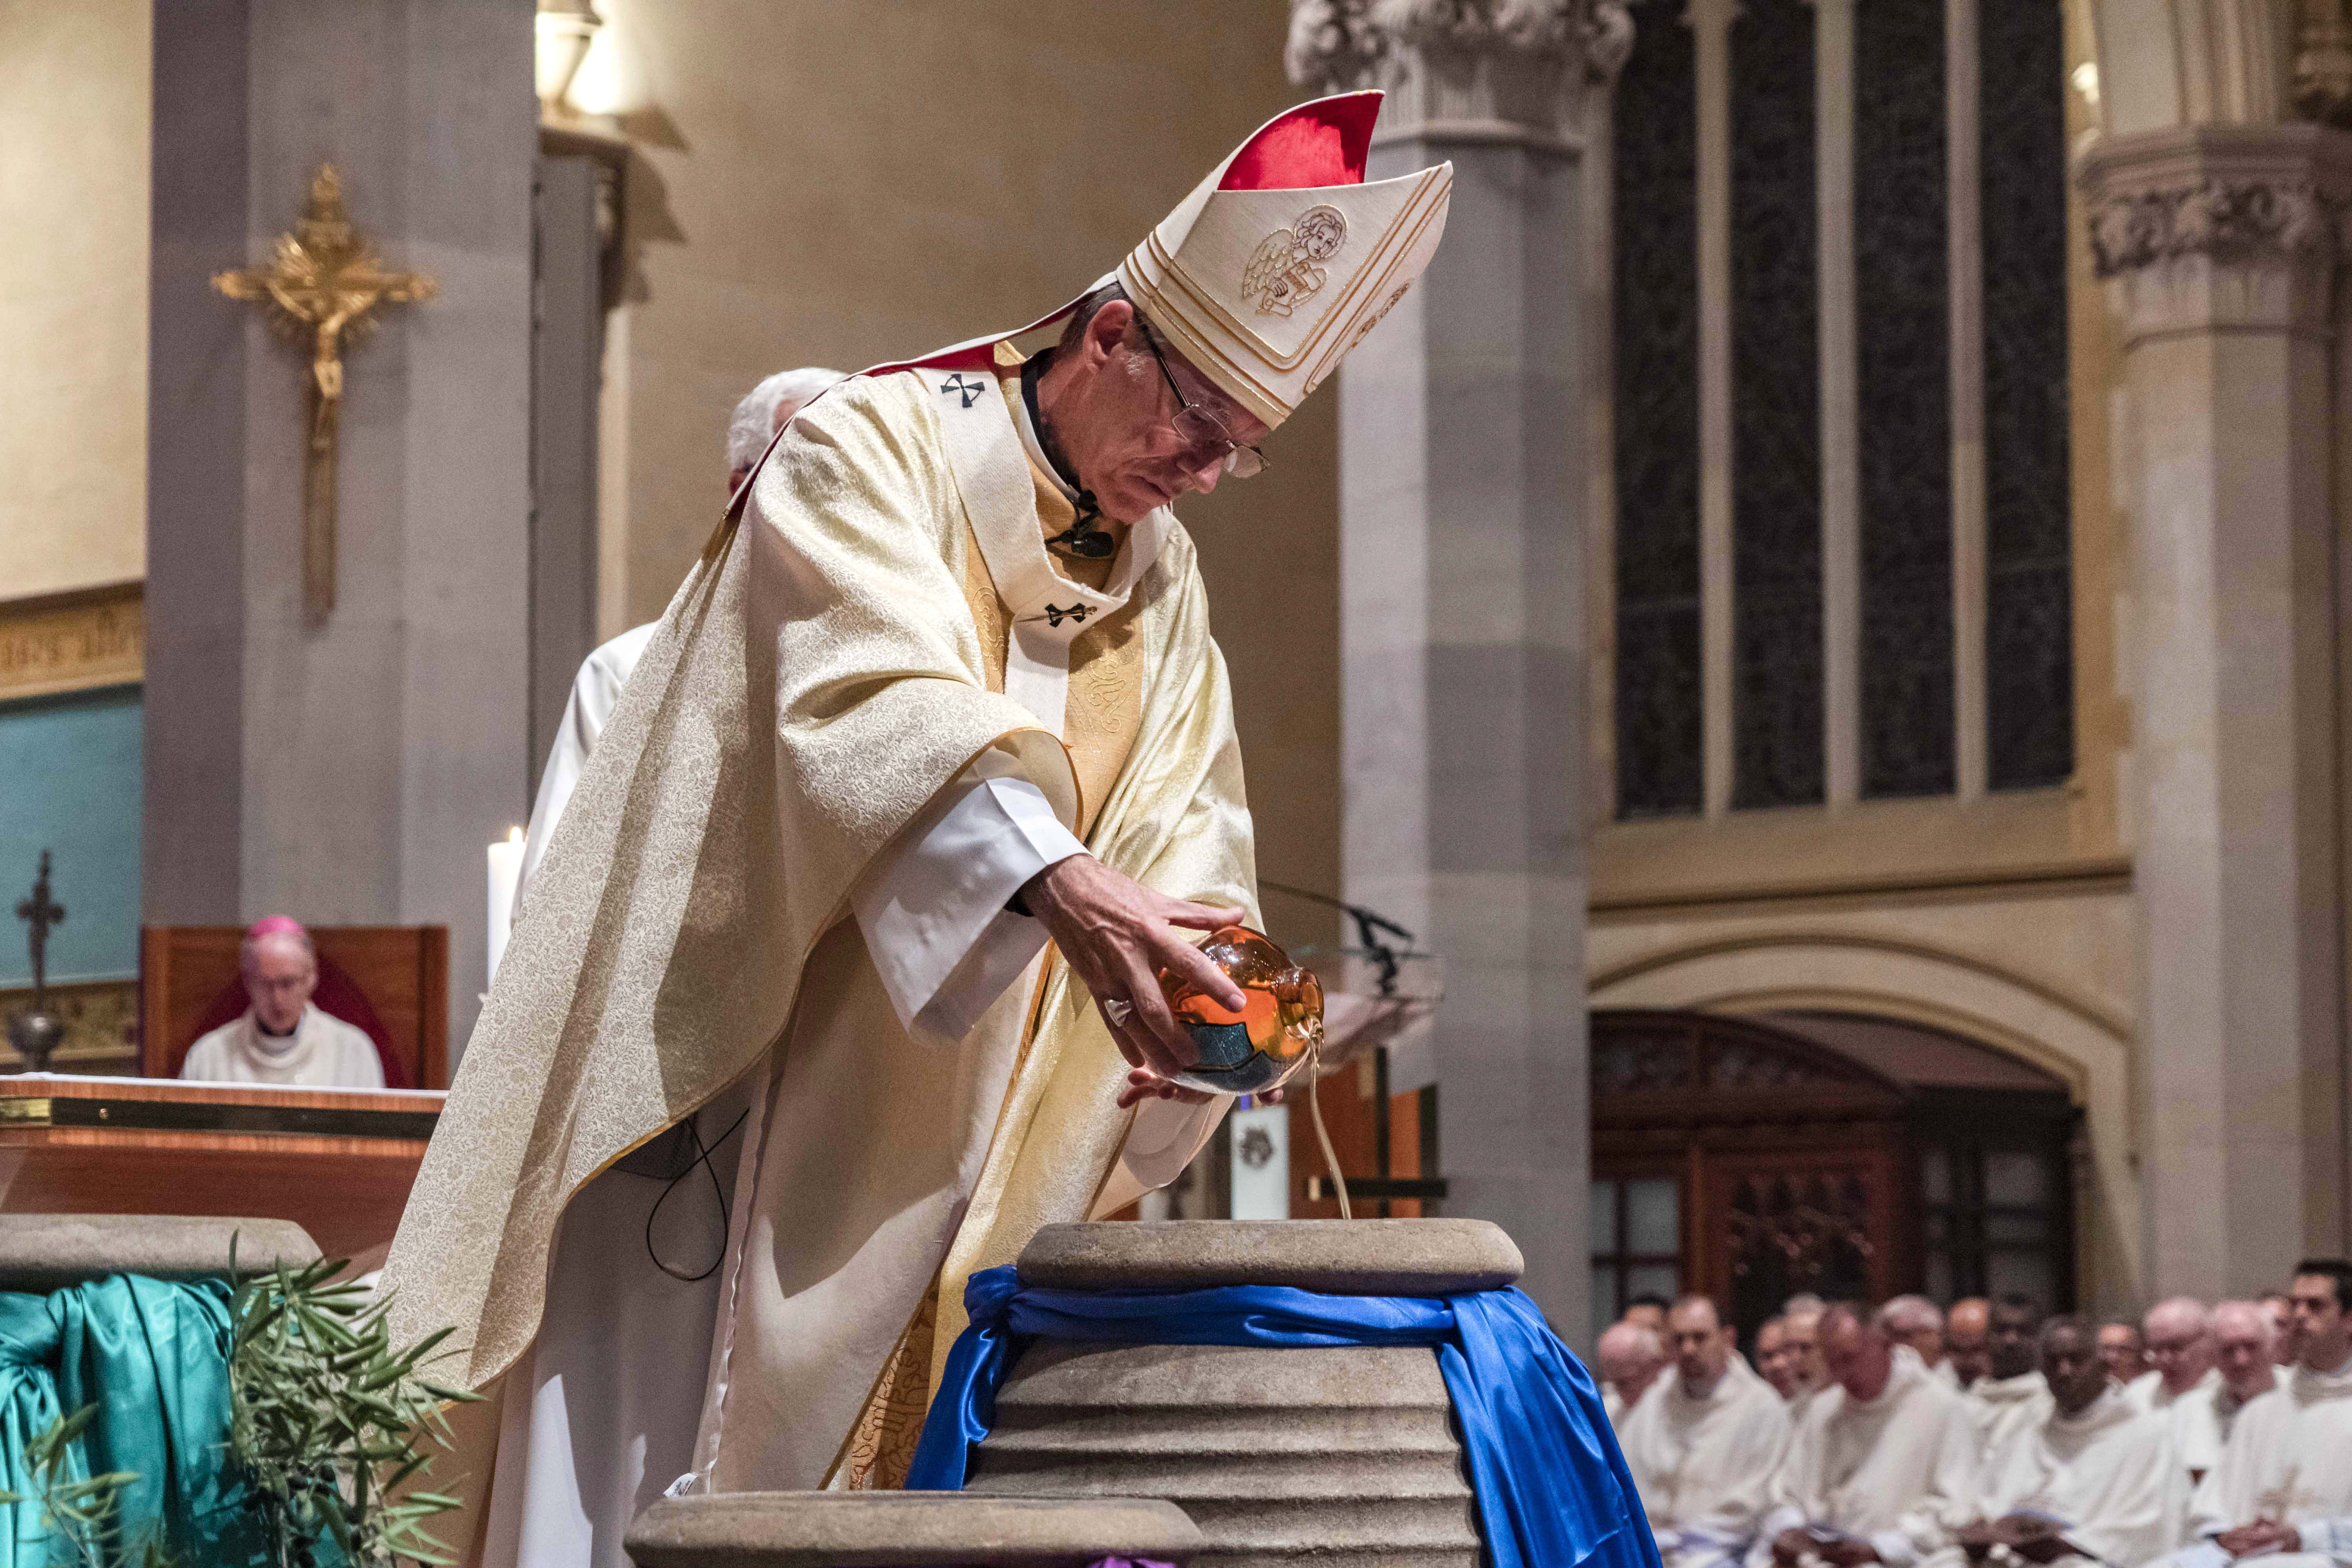 Archbishop Costelloe blessed the Holy Oils, all of which will be used for Sacraments of Confirmation, Ordination, Anointing of the Stick and Baptism in the coming year. Photo: Matthew Lau.